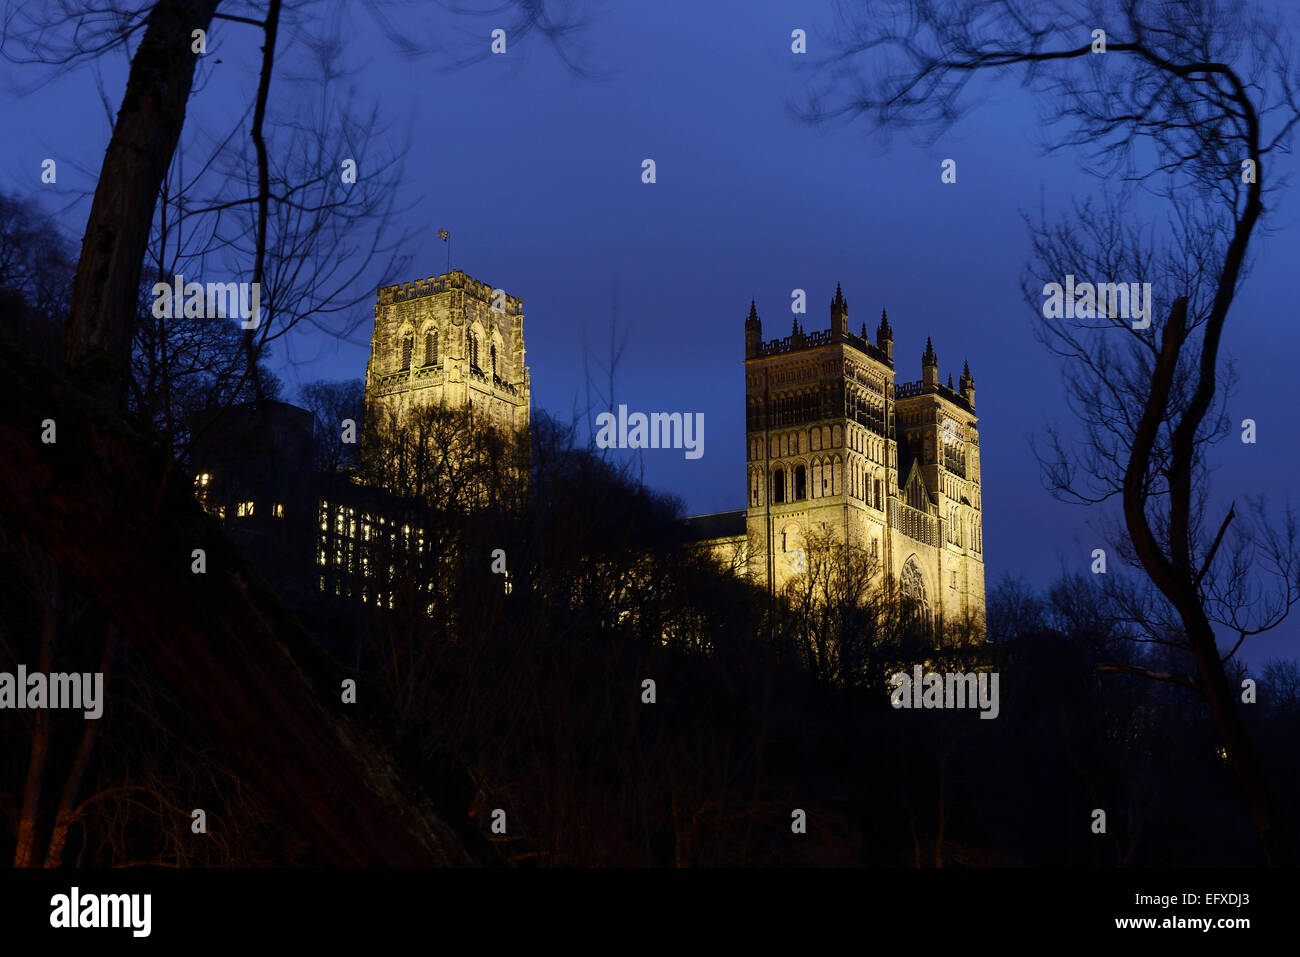 Durham Cathedral lit up at night - Stock Image